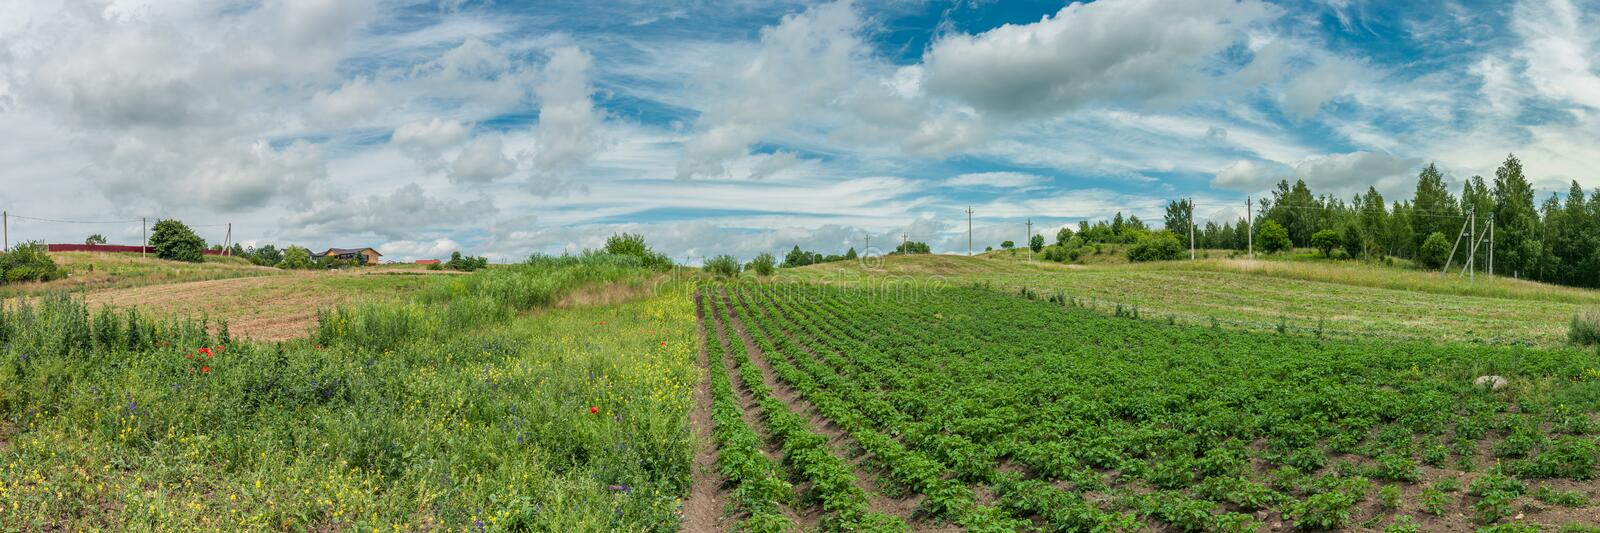 Old rural landscape. panoramic view of private farmland. Under a cloudy sky royalty free stock photo